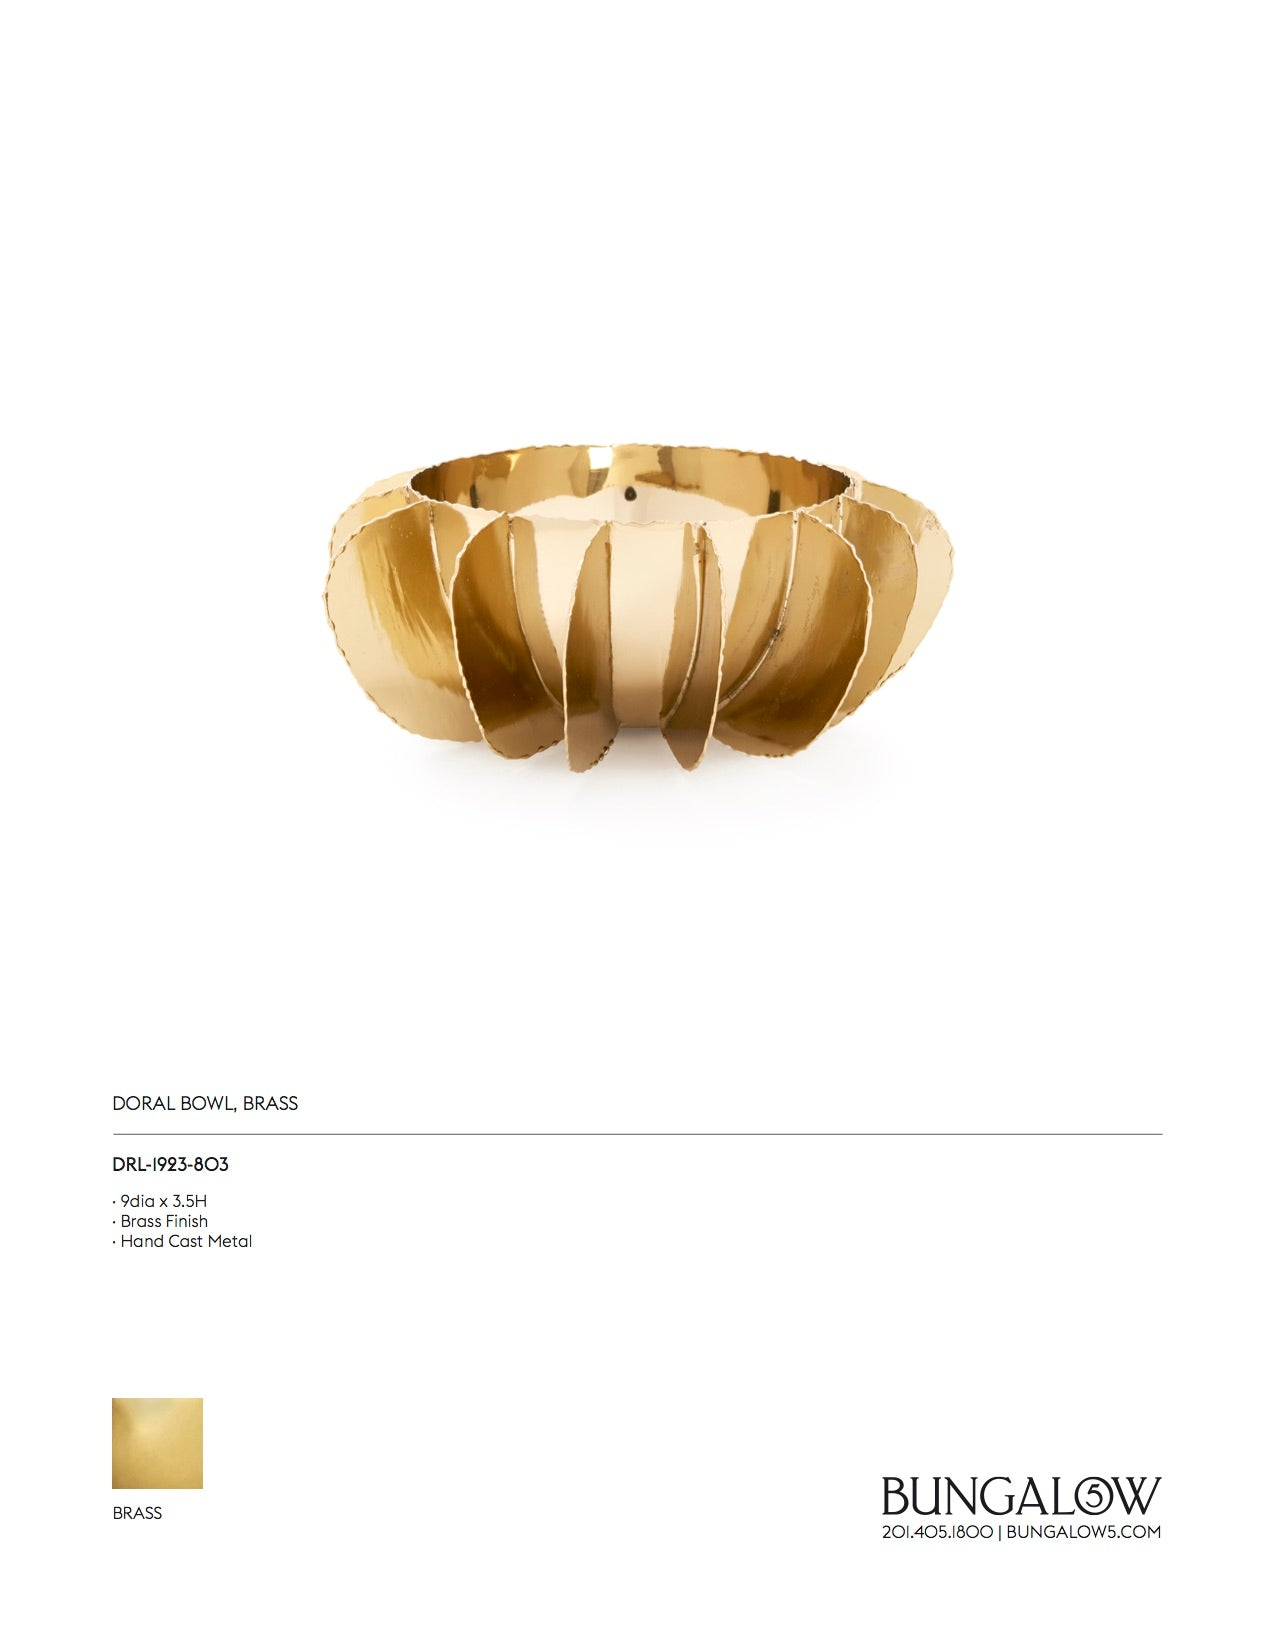 Bungalow 5 Doral Bowl Brass Tearsheet